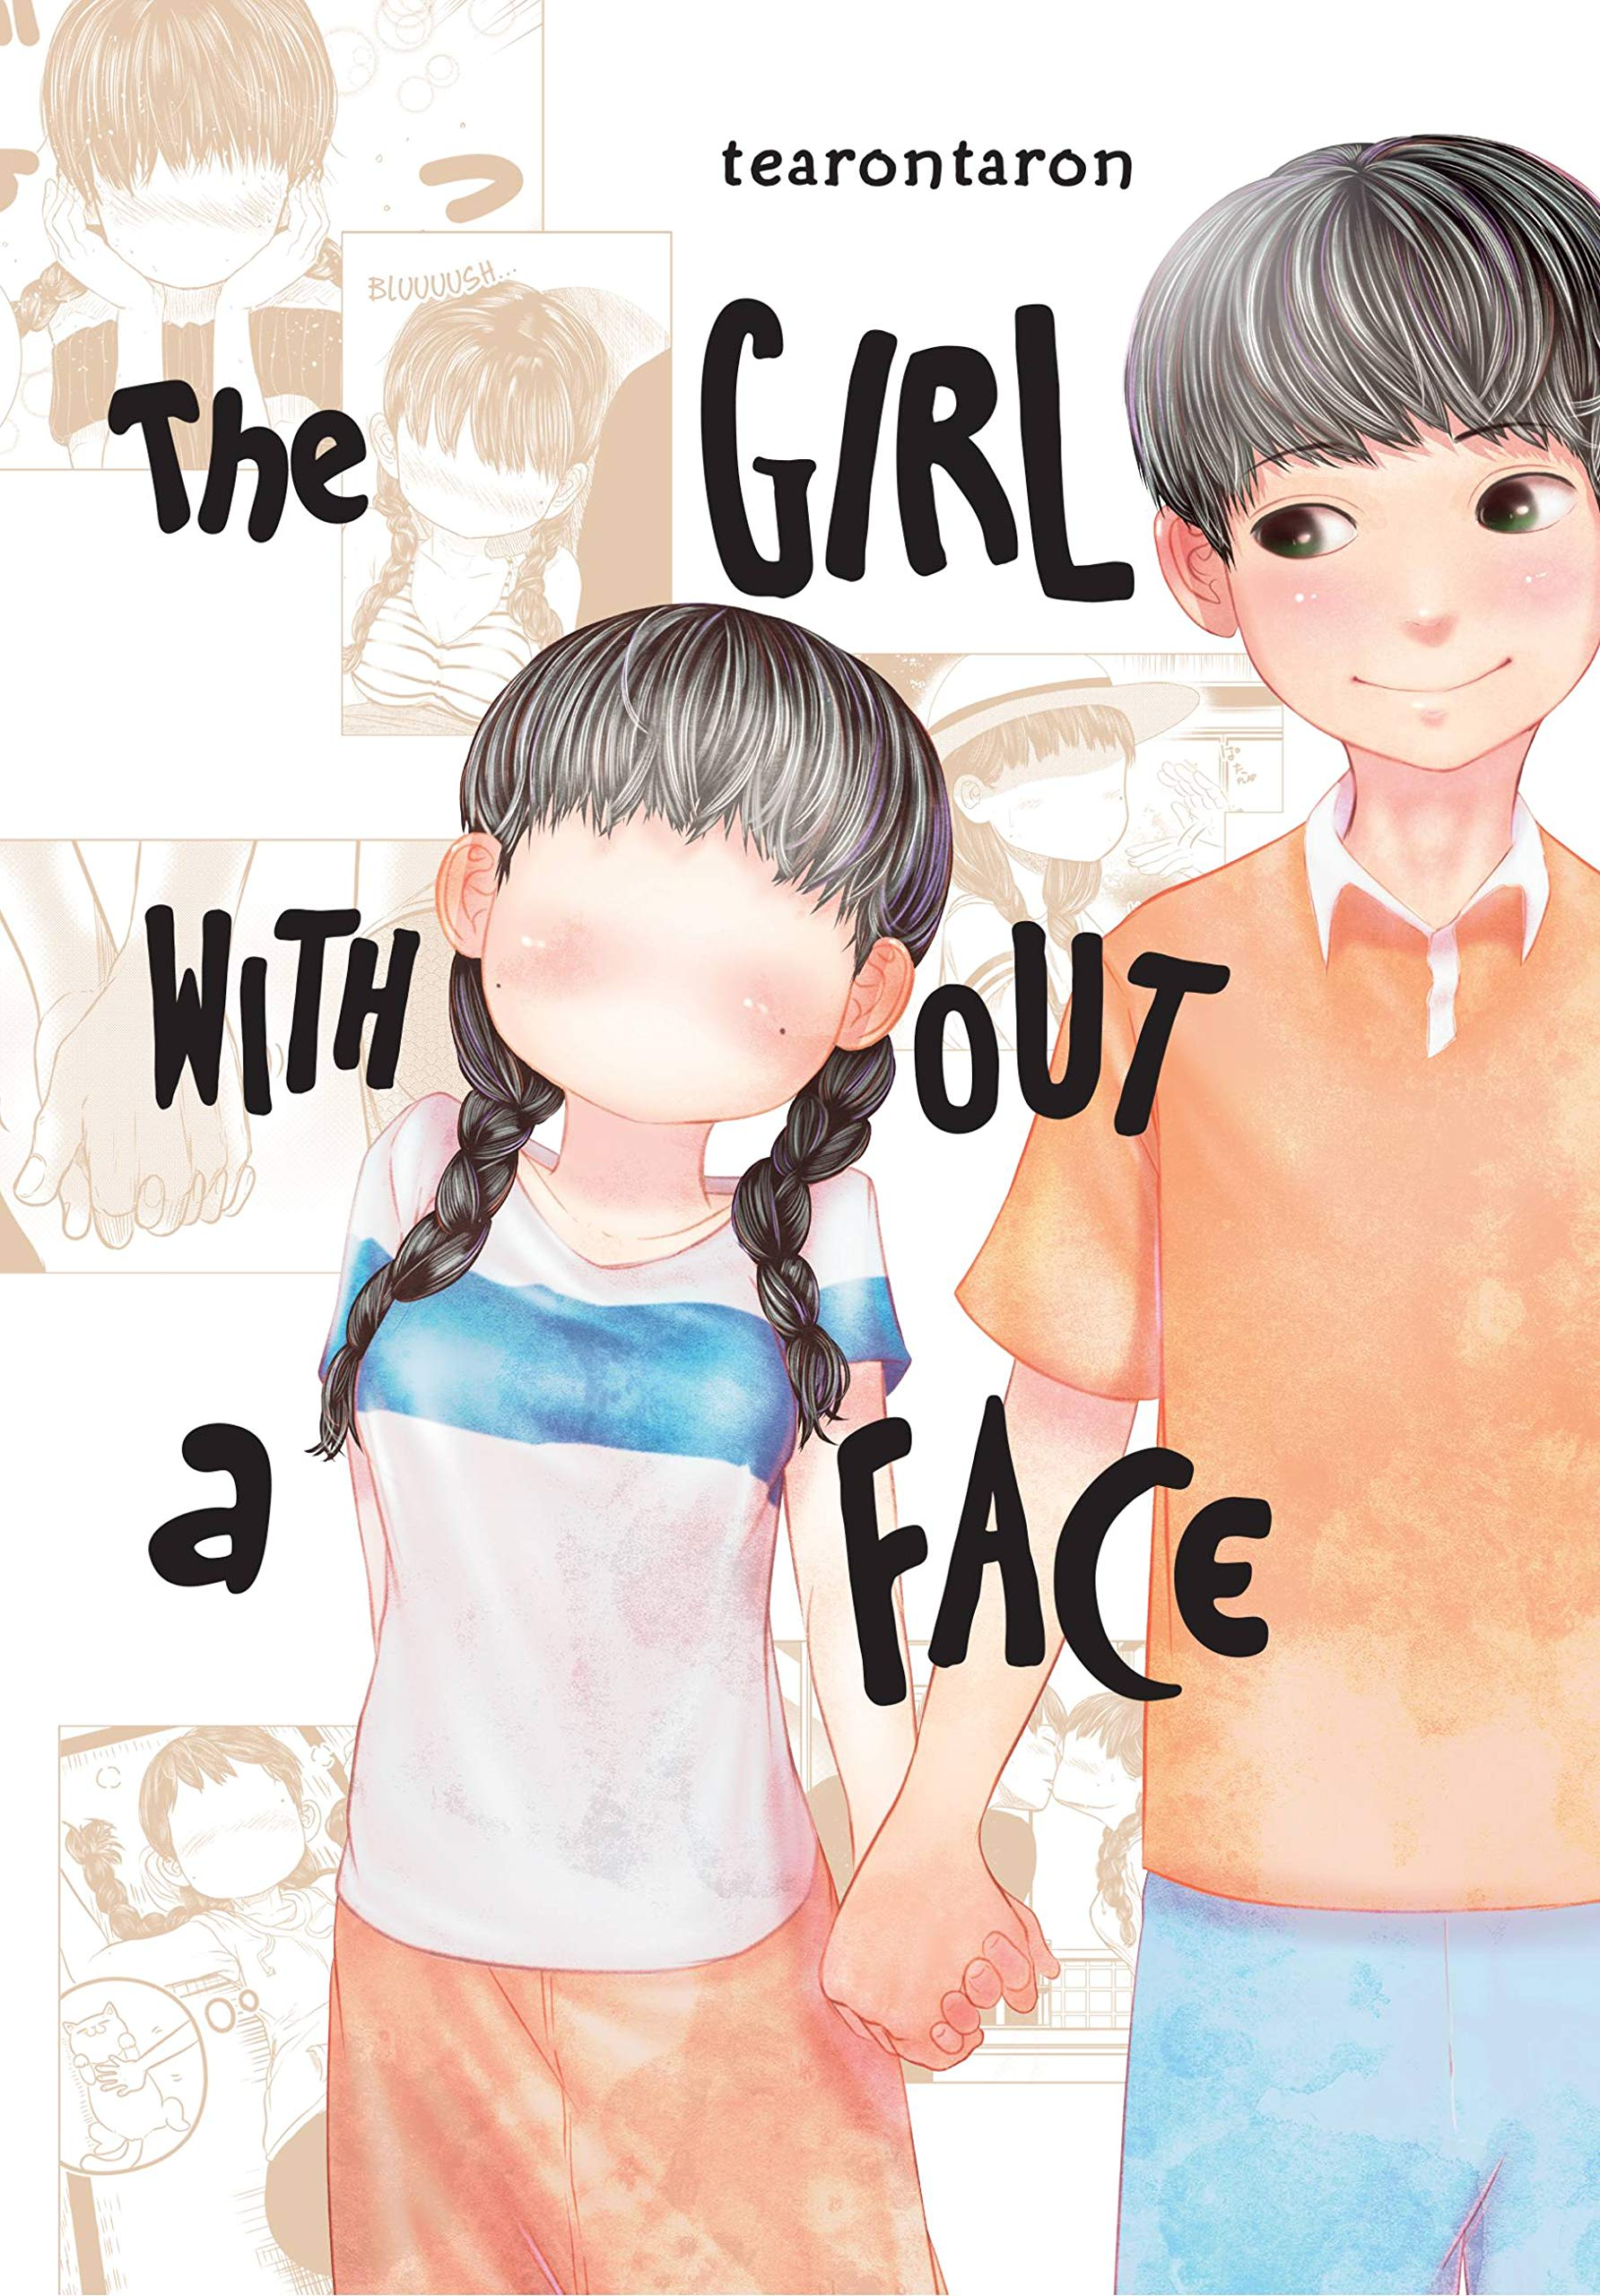 Background image for The Girl Without A Face Review